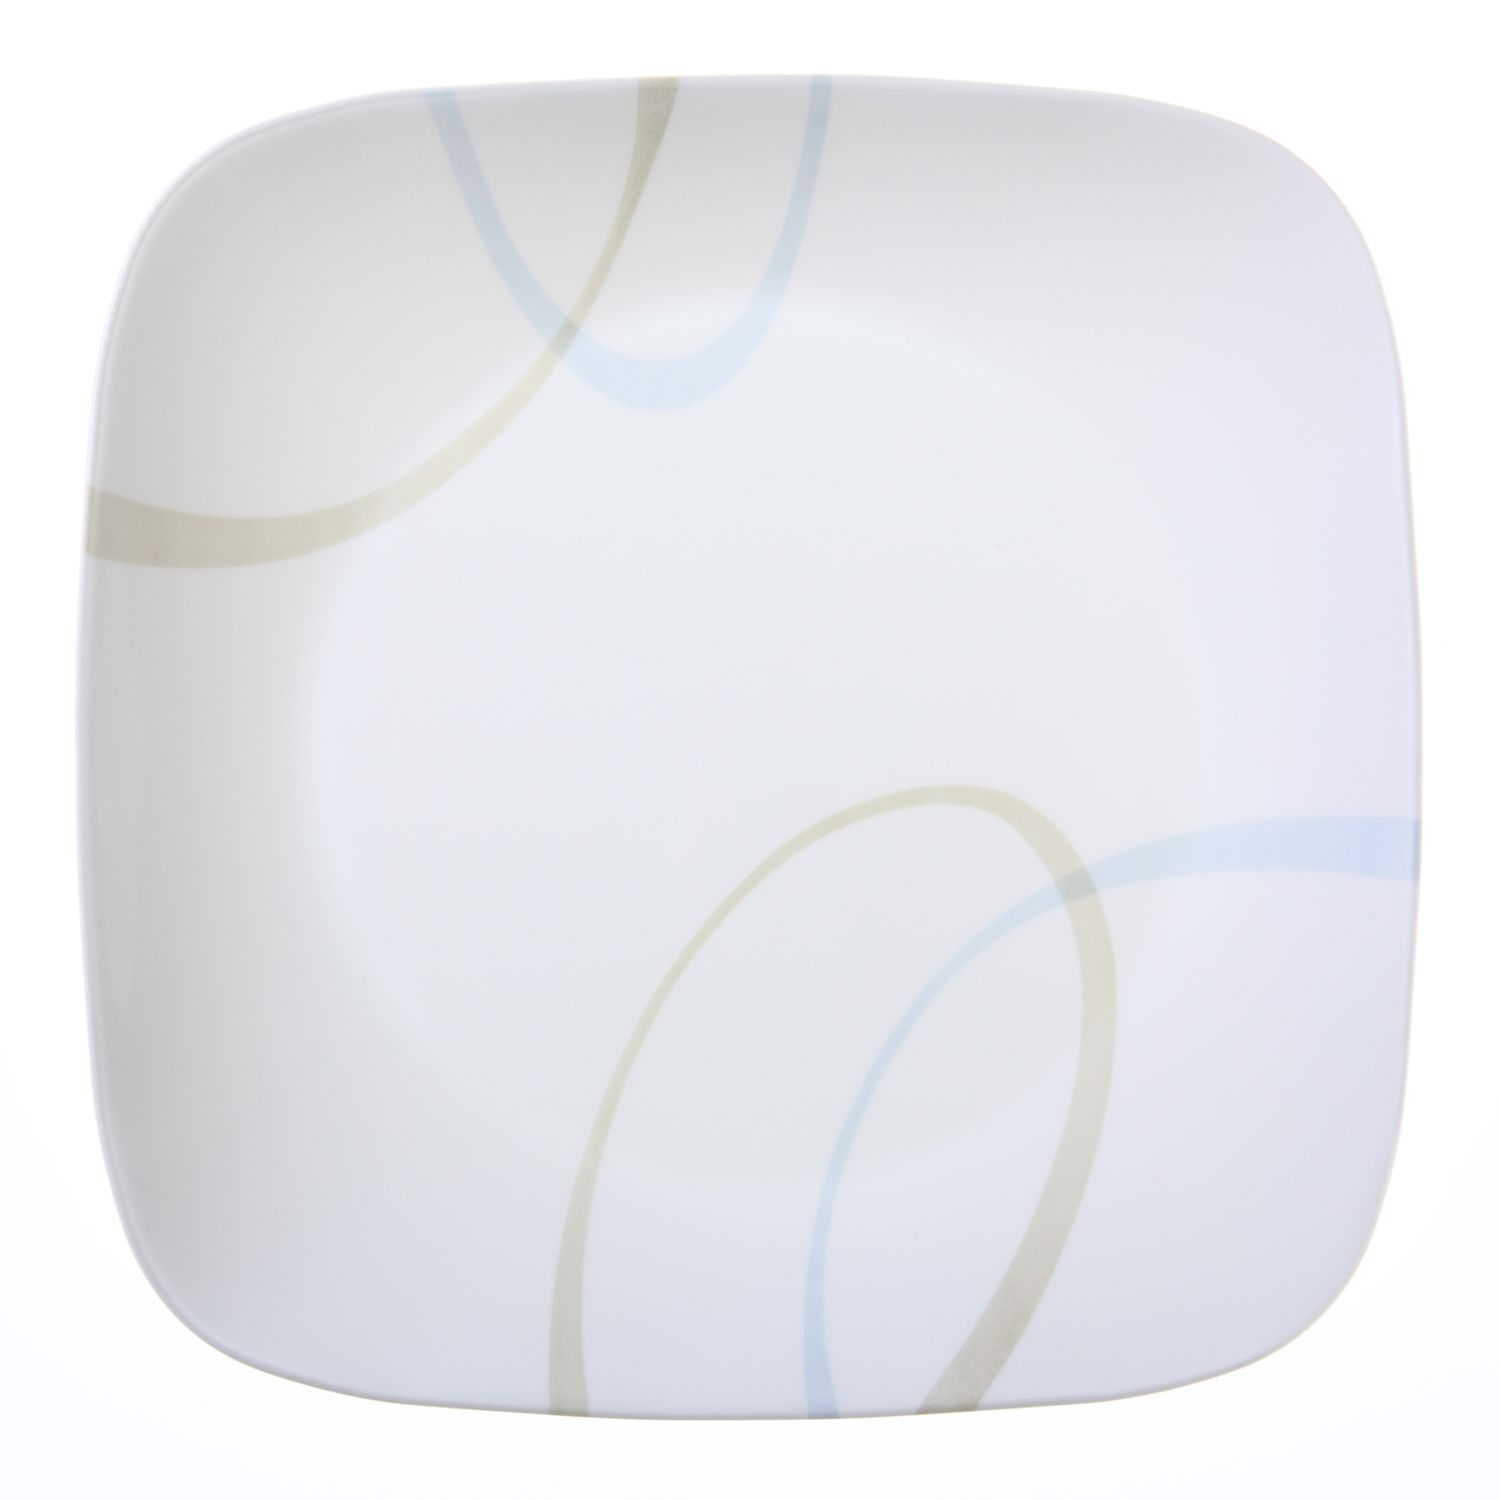 Corelle® Square™ Sand and Sky 16-Pc Dinnerware SetSquare™ Sand and Sky 16-Pc Dinnerware Set  sc 1 st  Pinterest & Corelle® Square™ Sand and Sky 16-Pc Dinnerware SetSquare™ Sand and ...